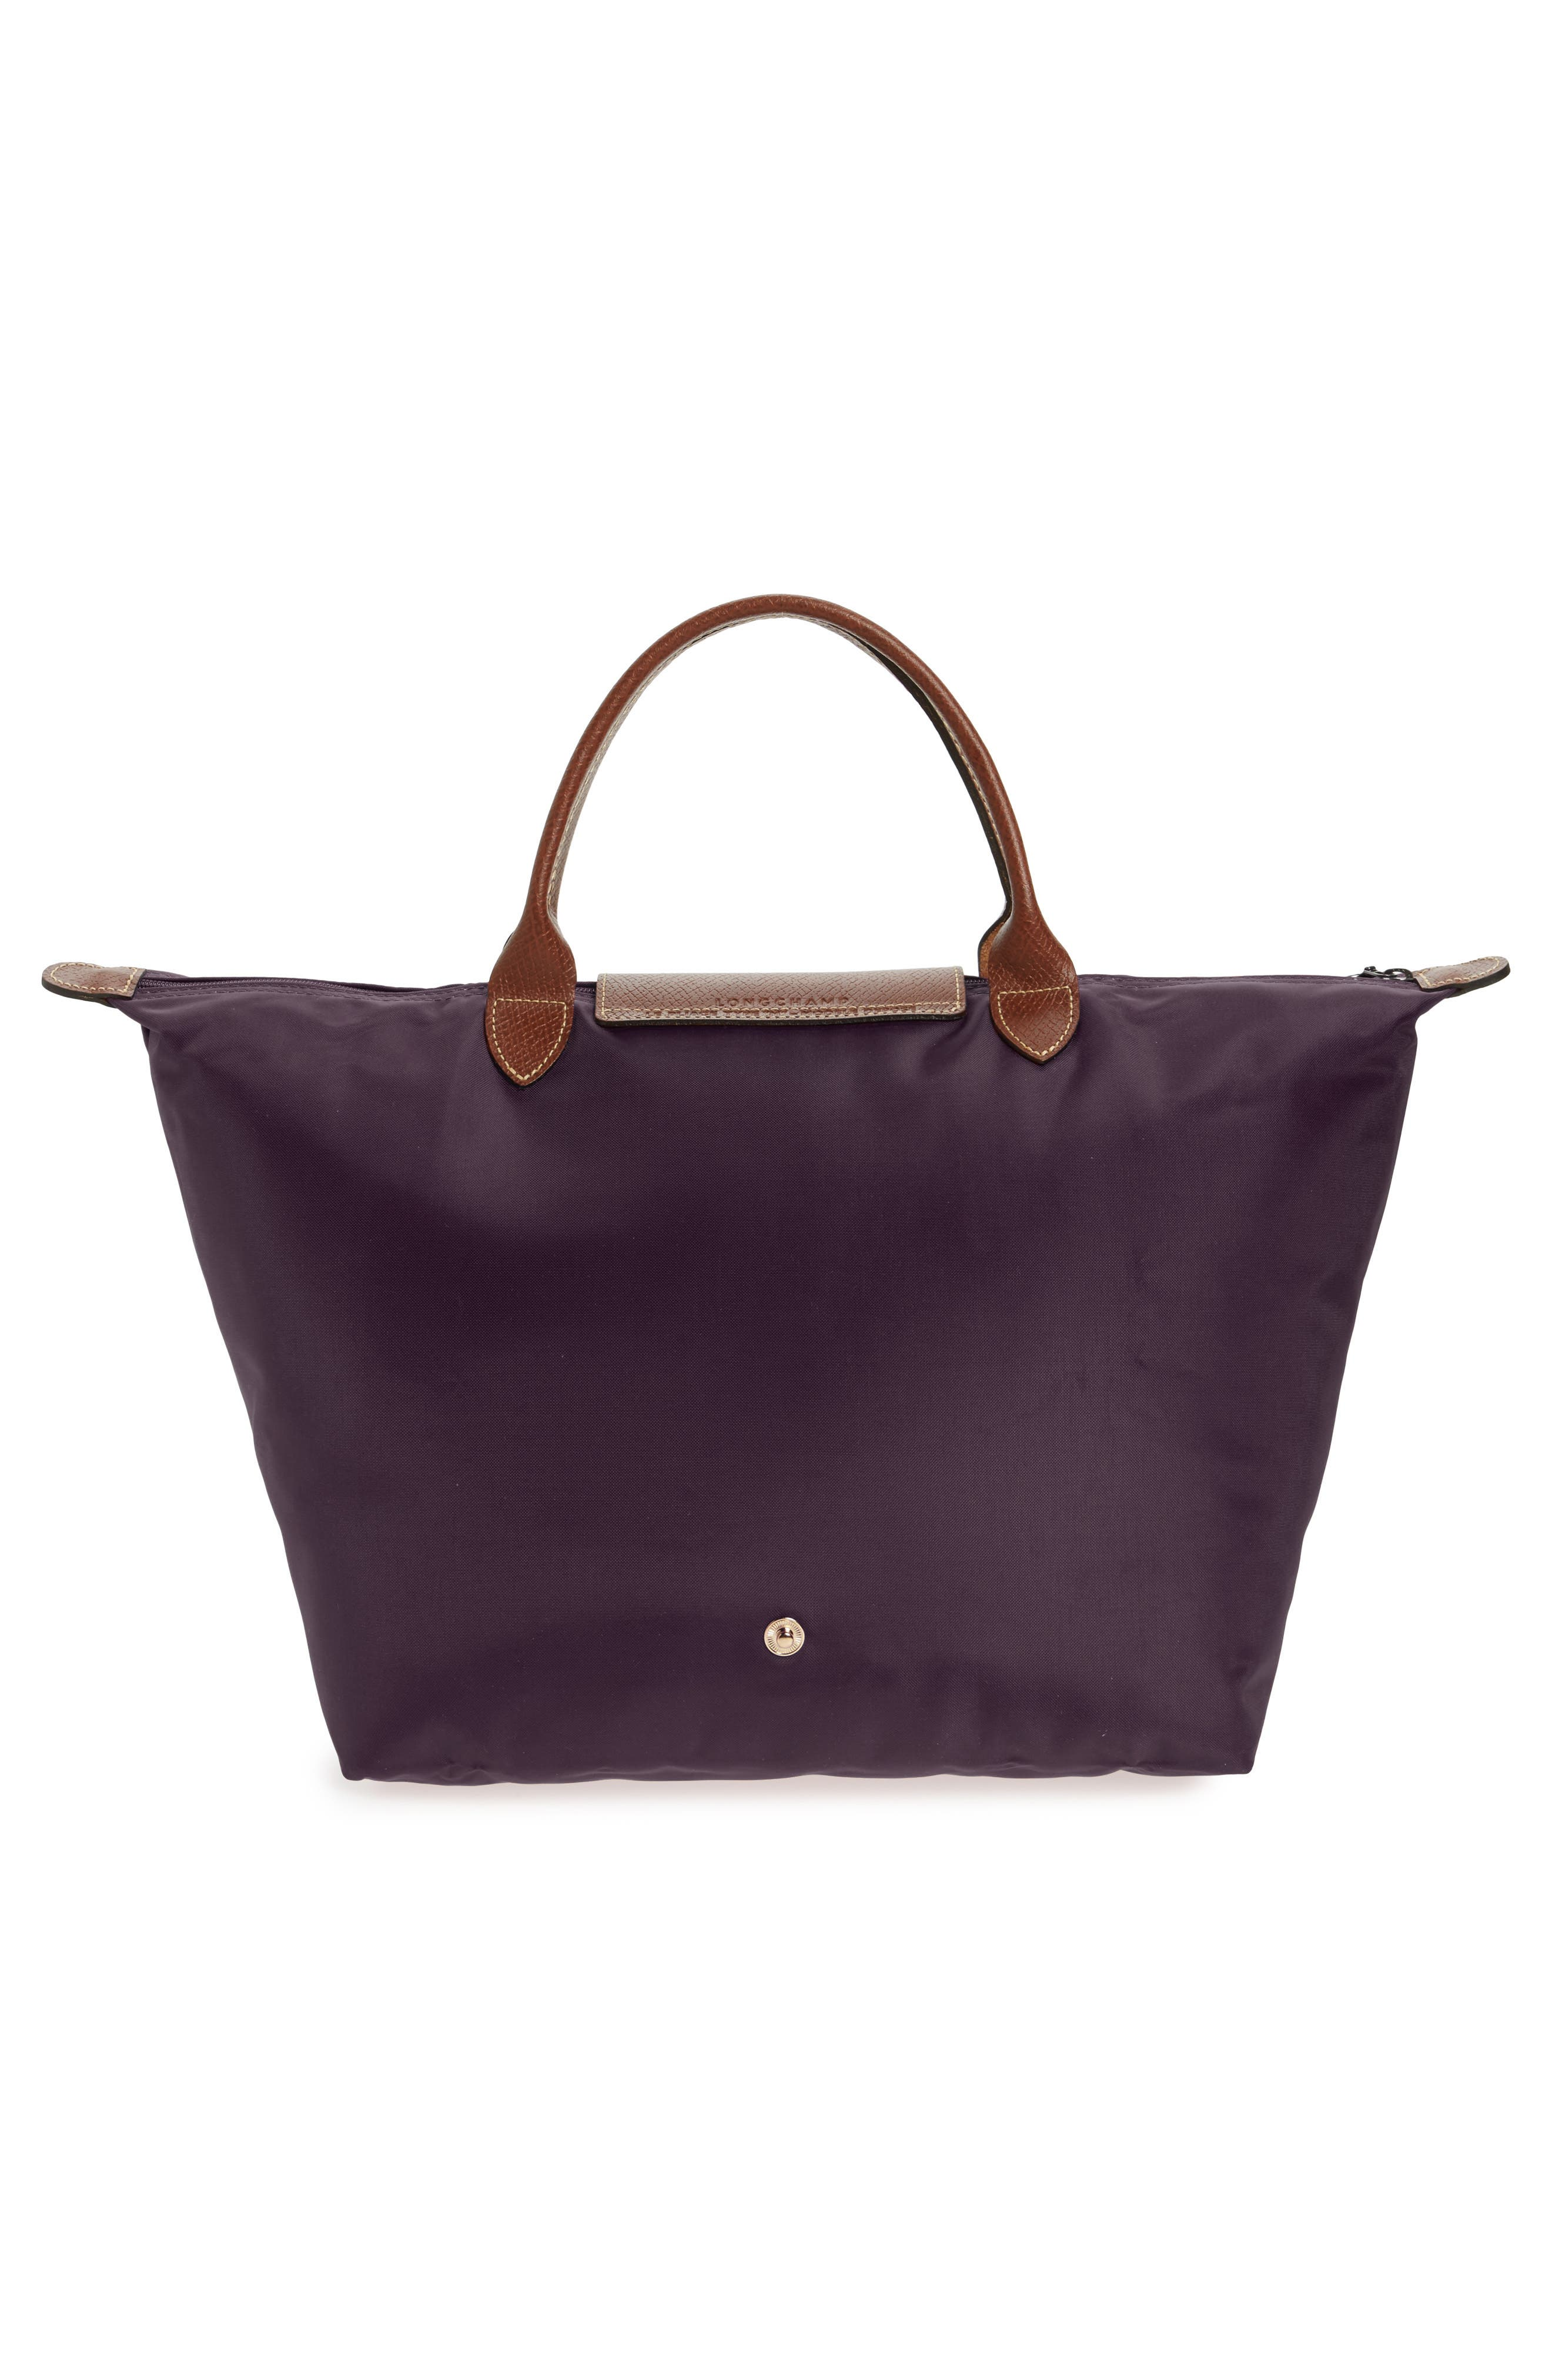 Alternate Image 3  - Longchamp 'Medium Le Pliage' Nylon Tote